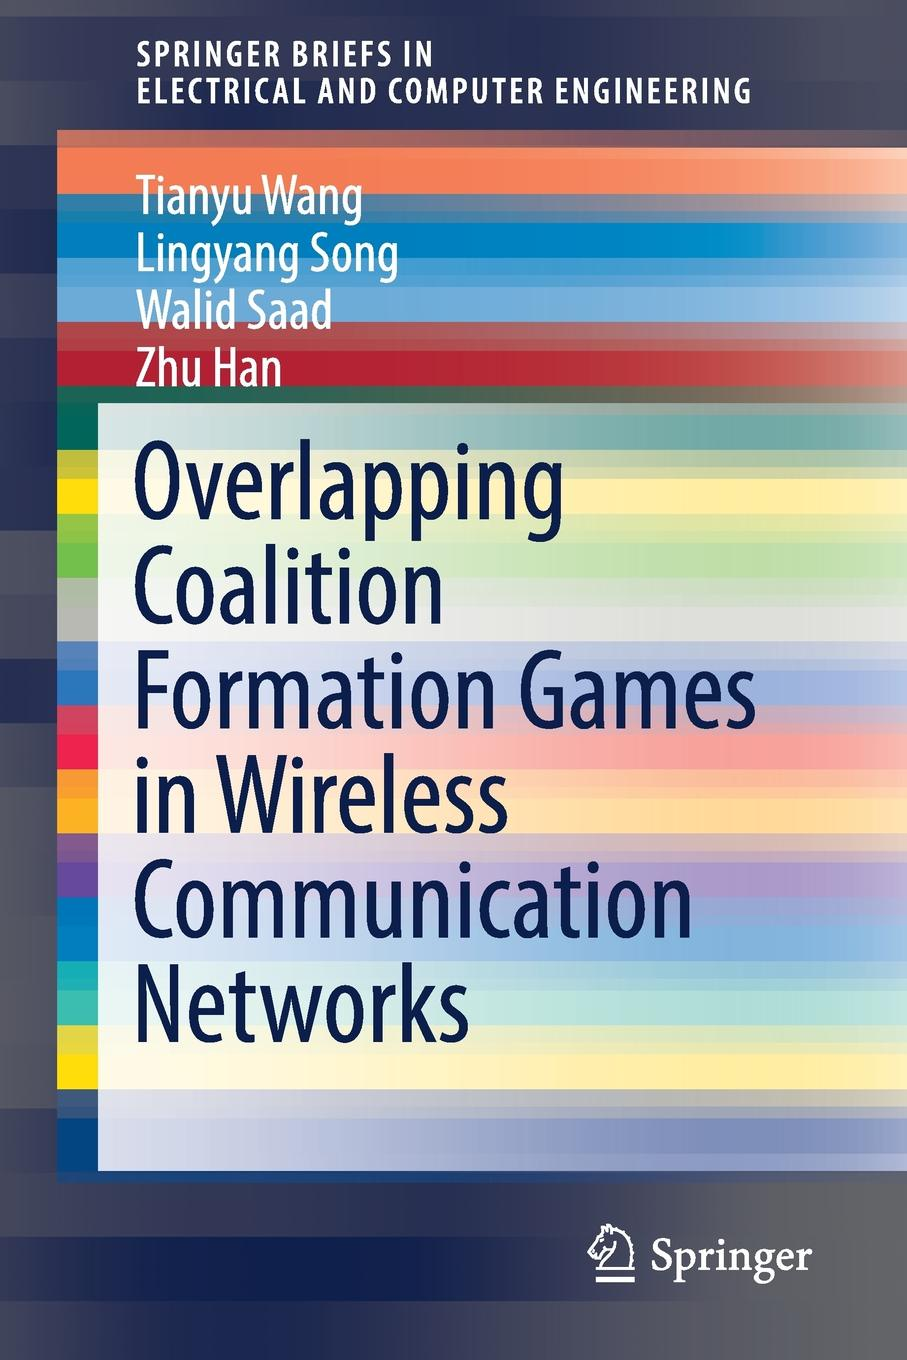 Tianyu Wang, Lingyang Song, Walid Saad Overlapping Coalition Formation Games in Wireless Communication Networks mostafa redwan hardpan formation in mine tailings